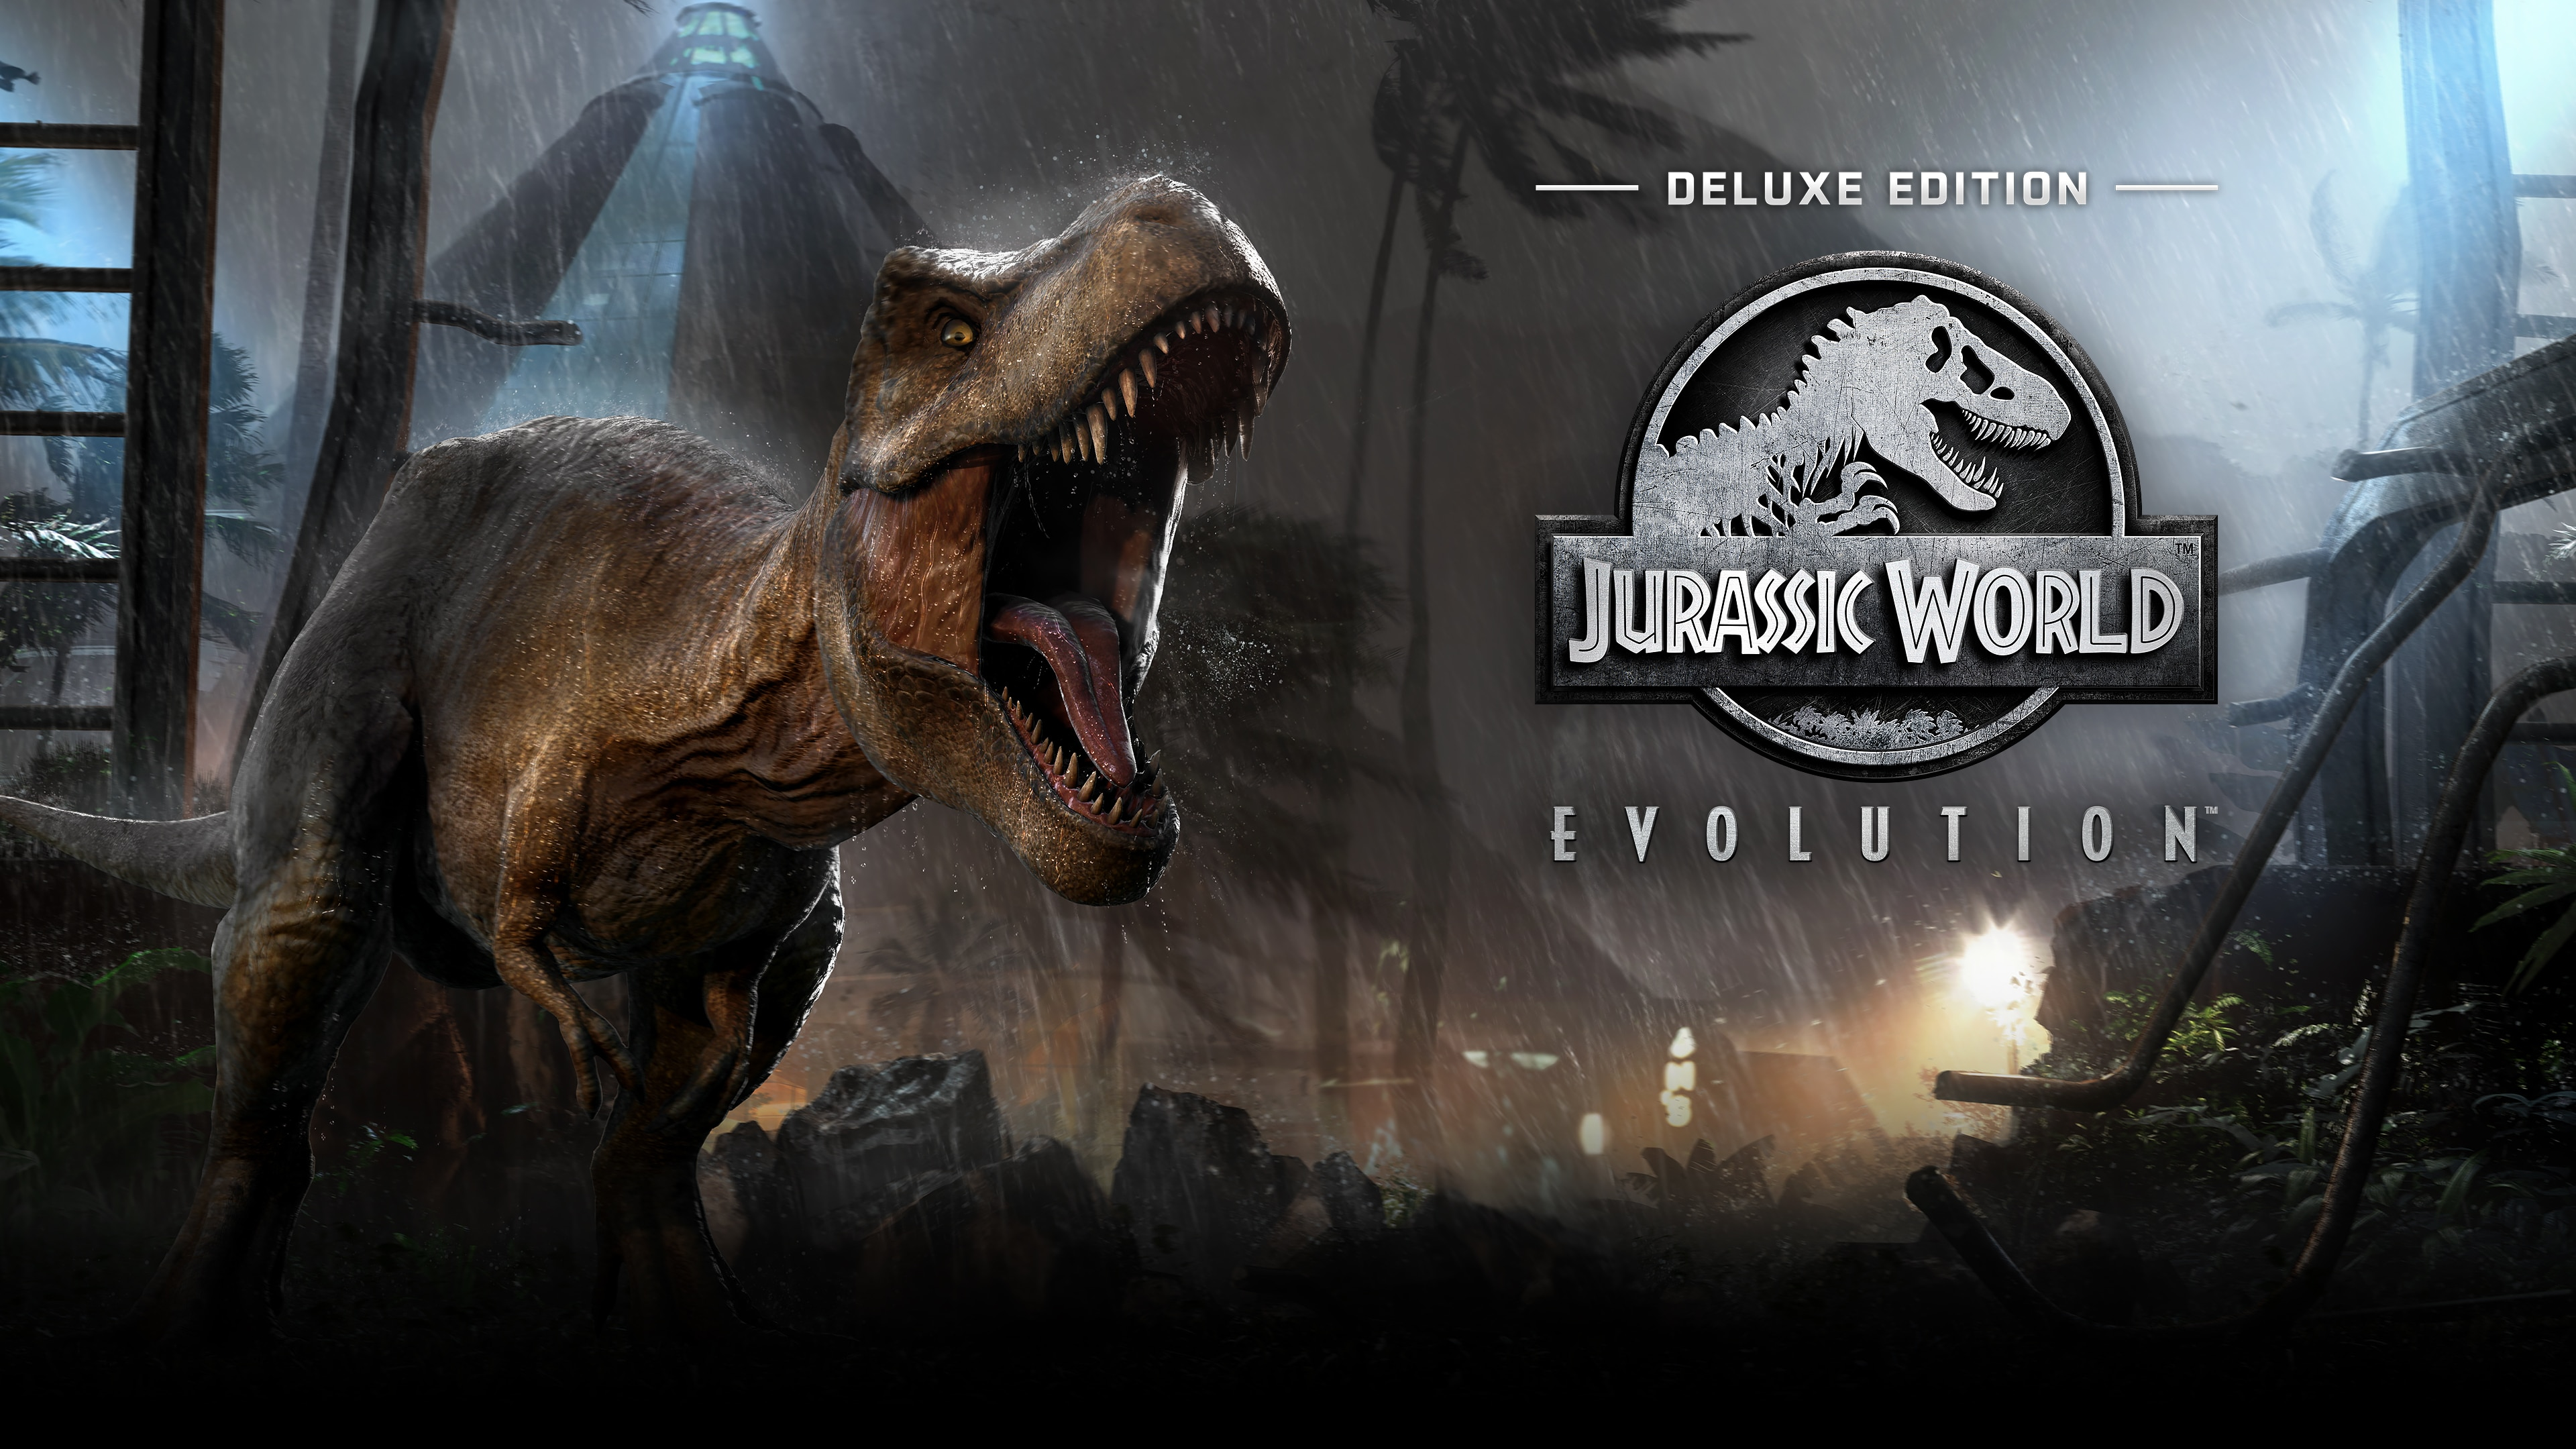 Edición Deluxe de Jurassic World Evolution